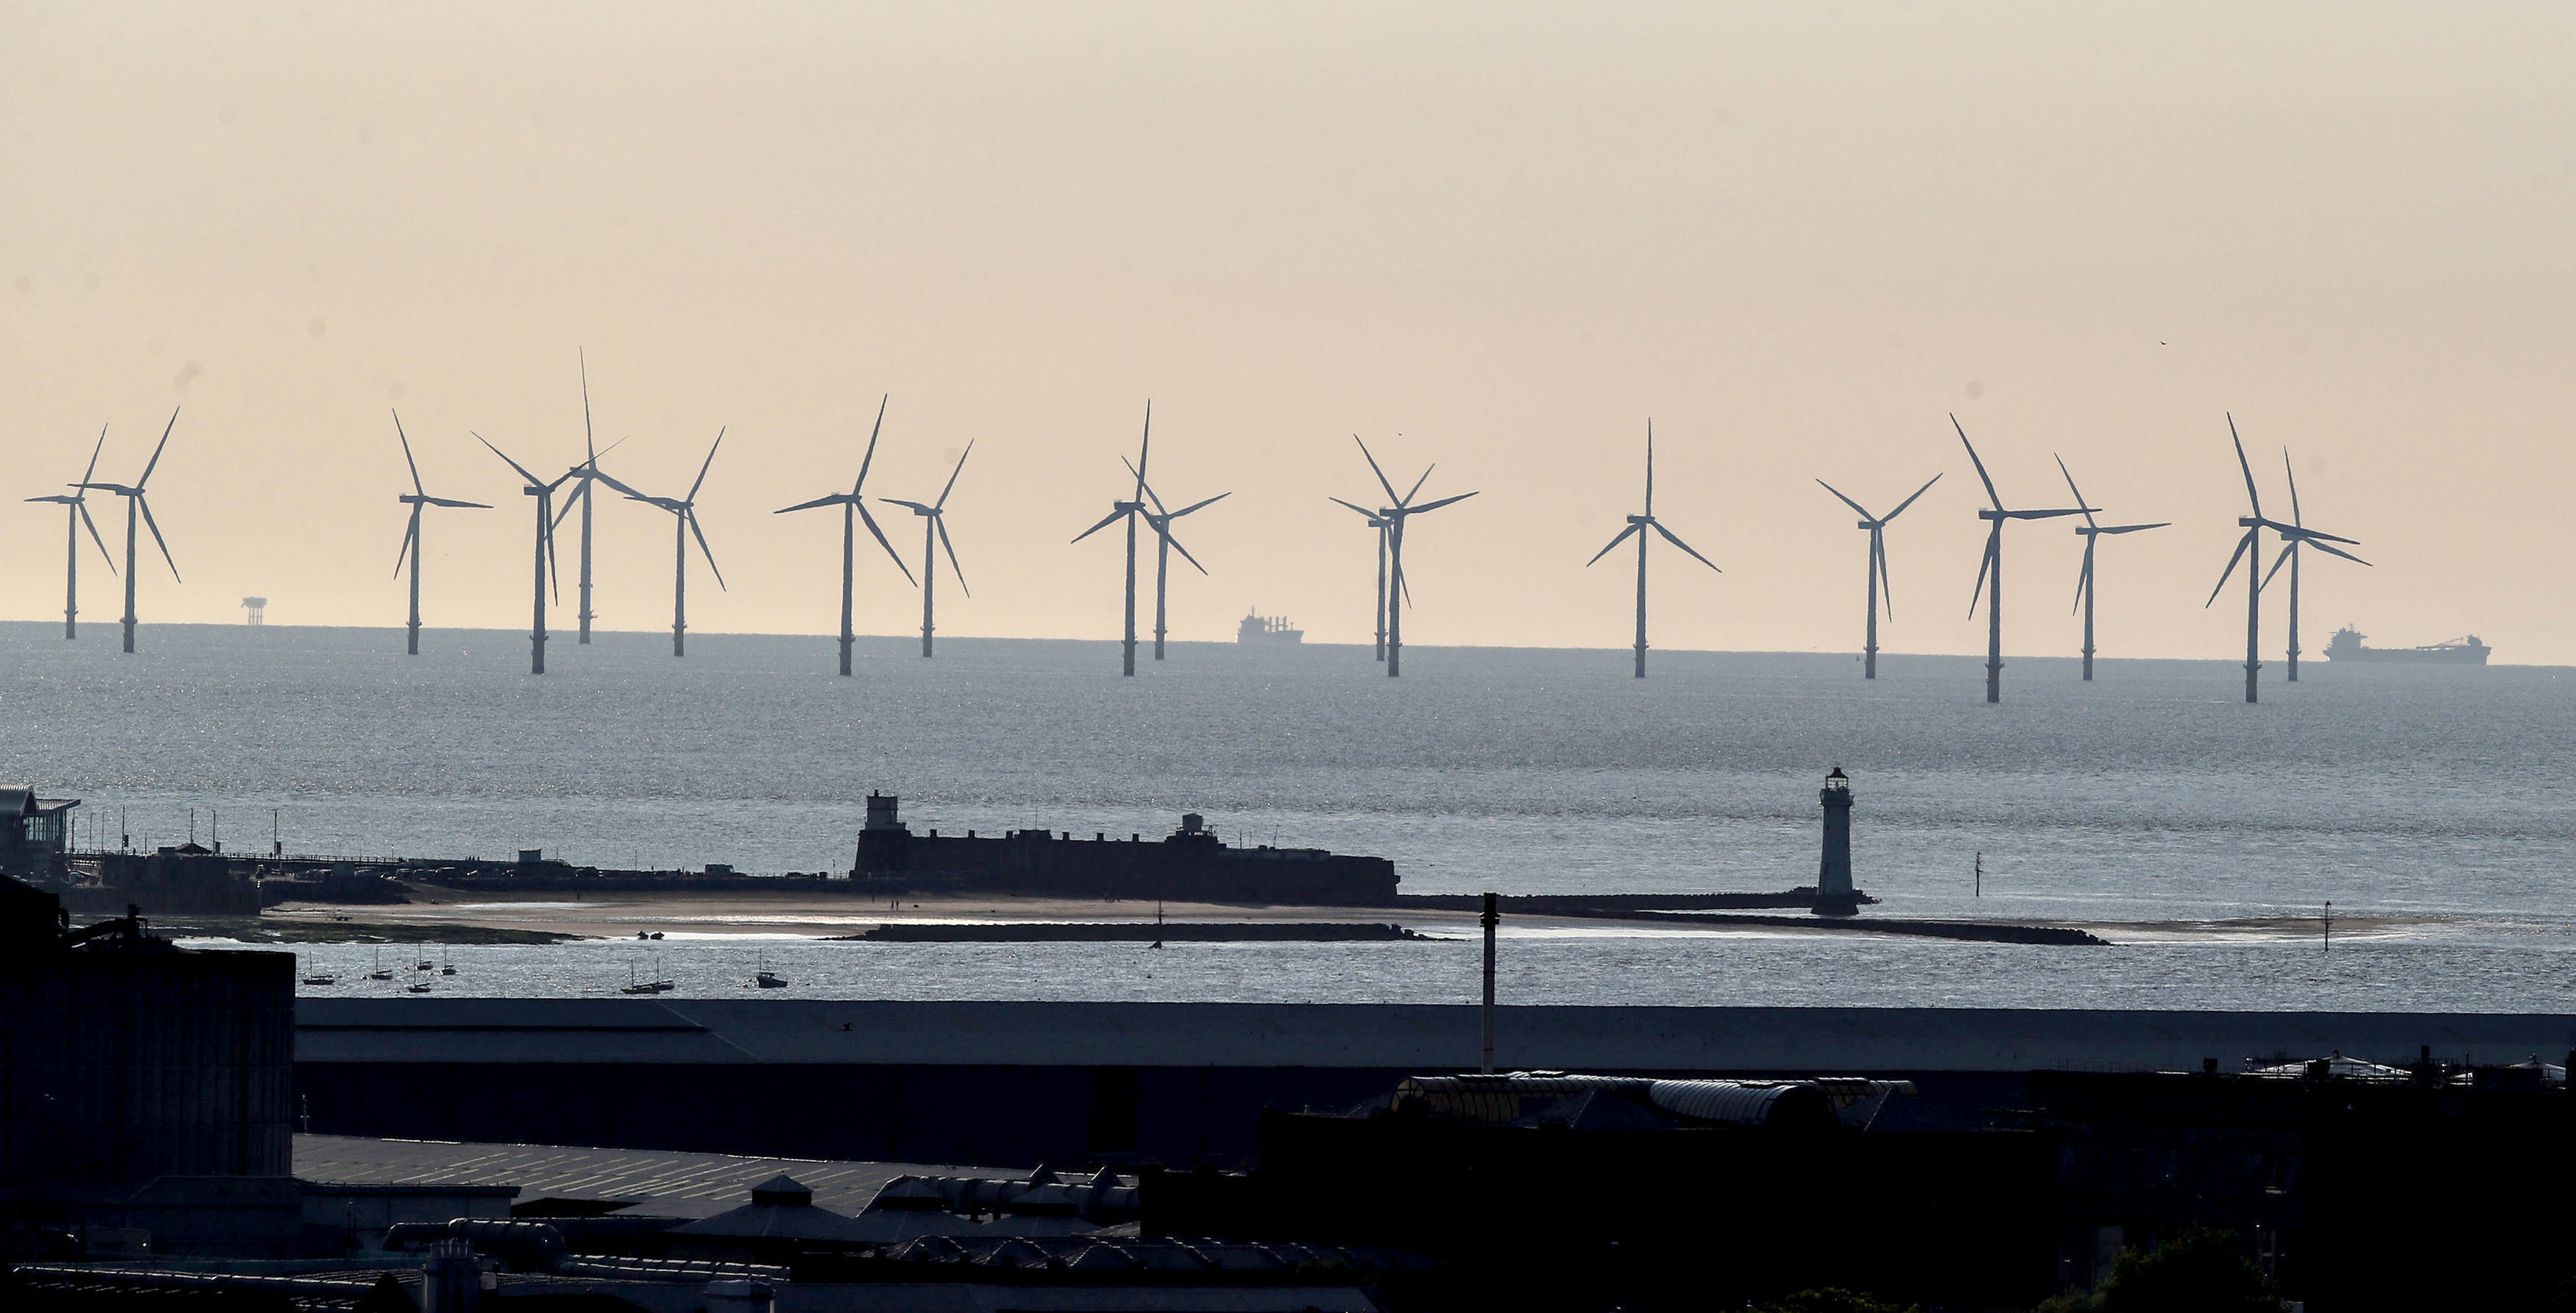 United Kingdom power output set for 'landmark tipping point'